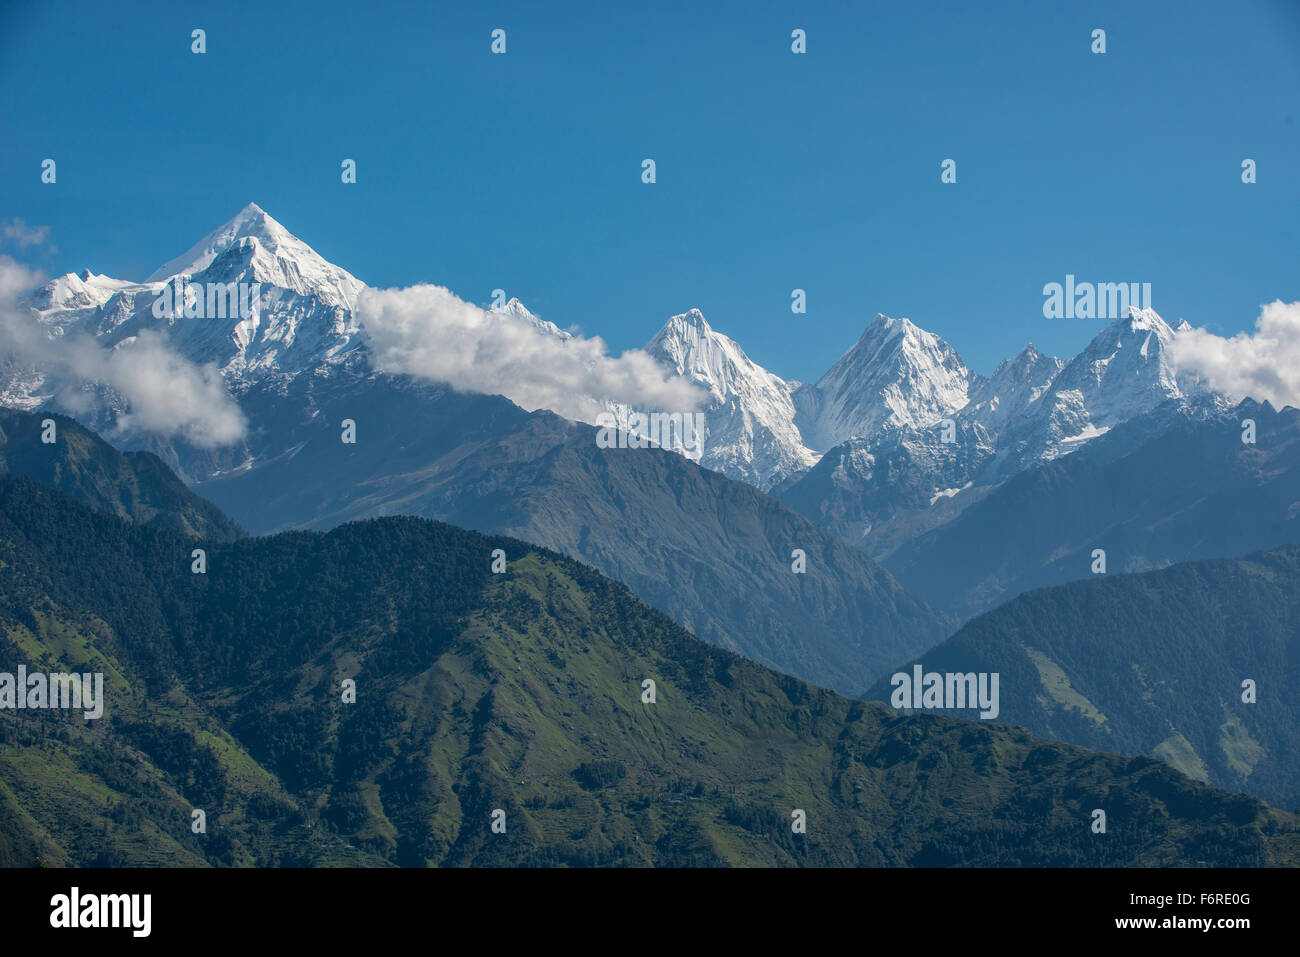 The Panchchuli peaks are a group of five snow-capped Himalayan peaks lying at the end of the eastern Kumaon region. - Stock Image